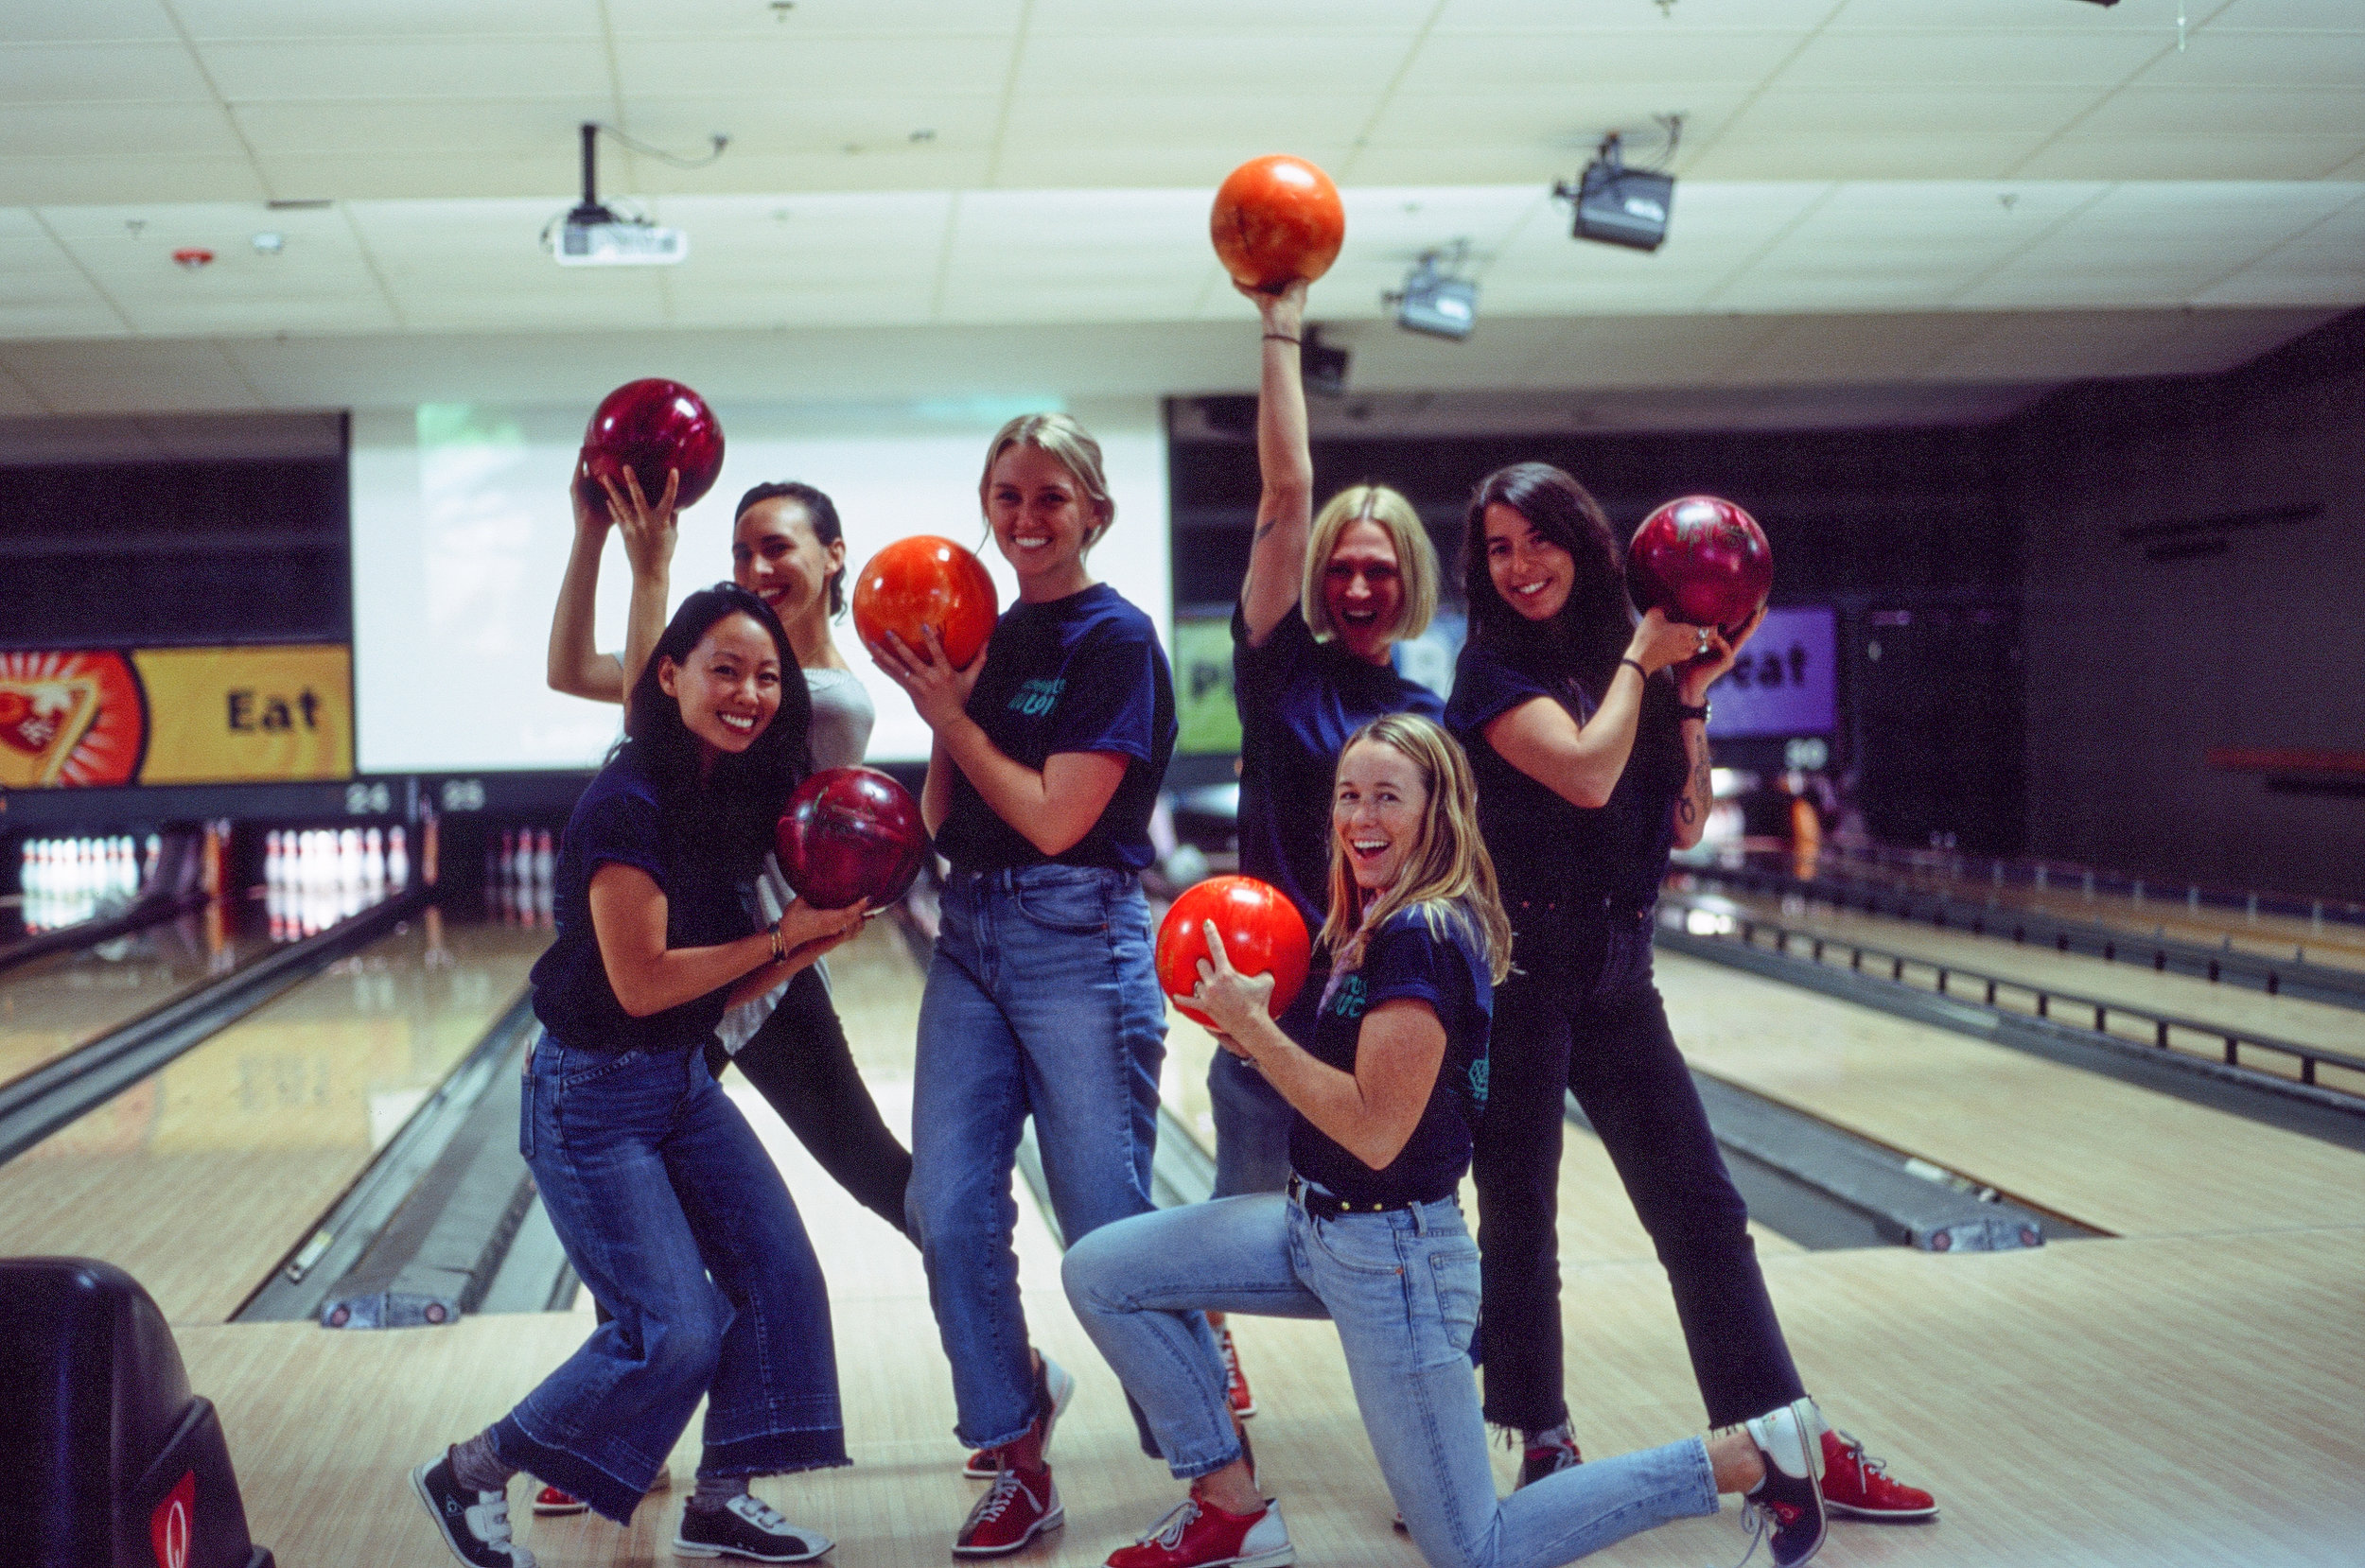 Team girl squad - Girls night out for the bachelorette party